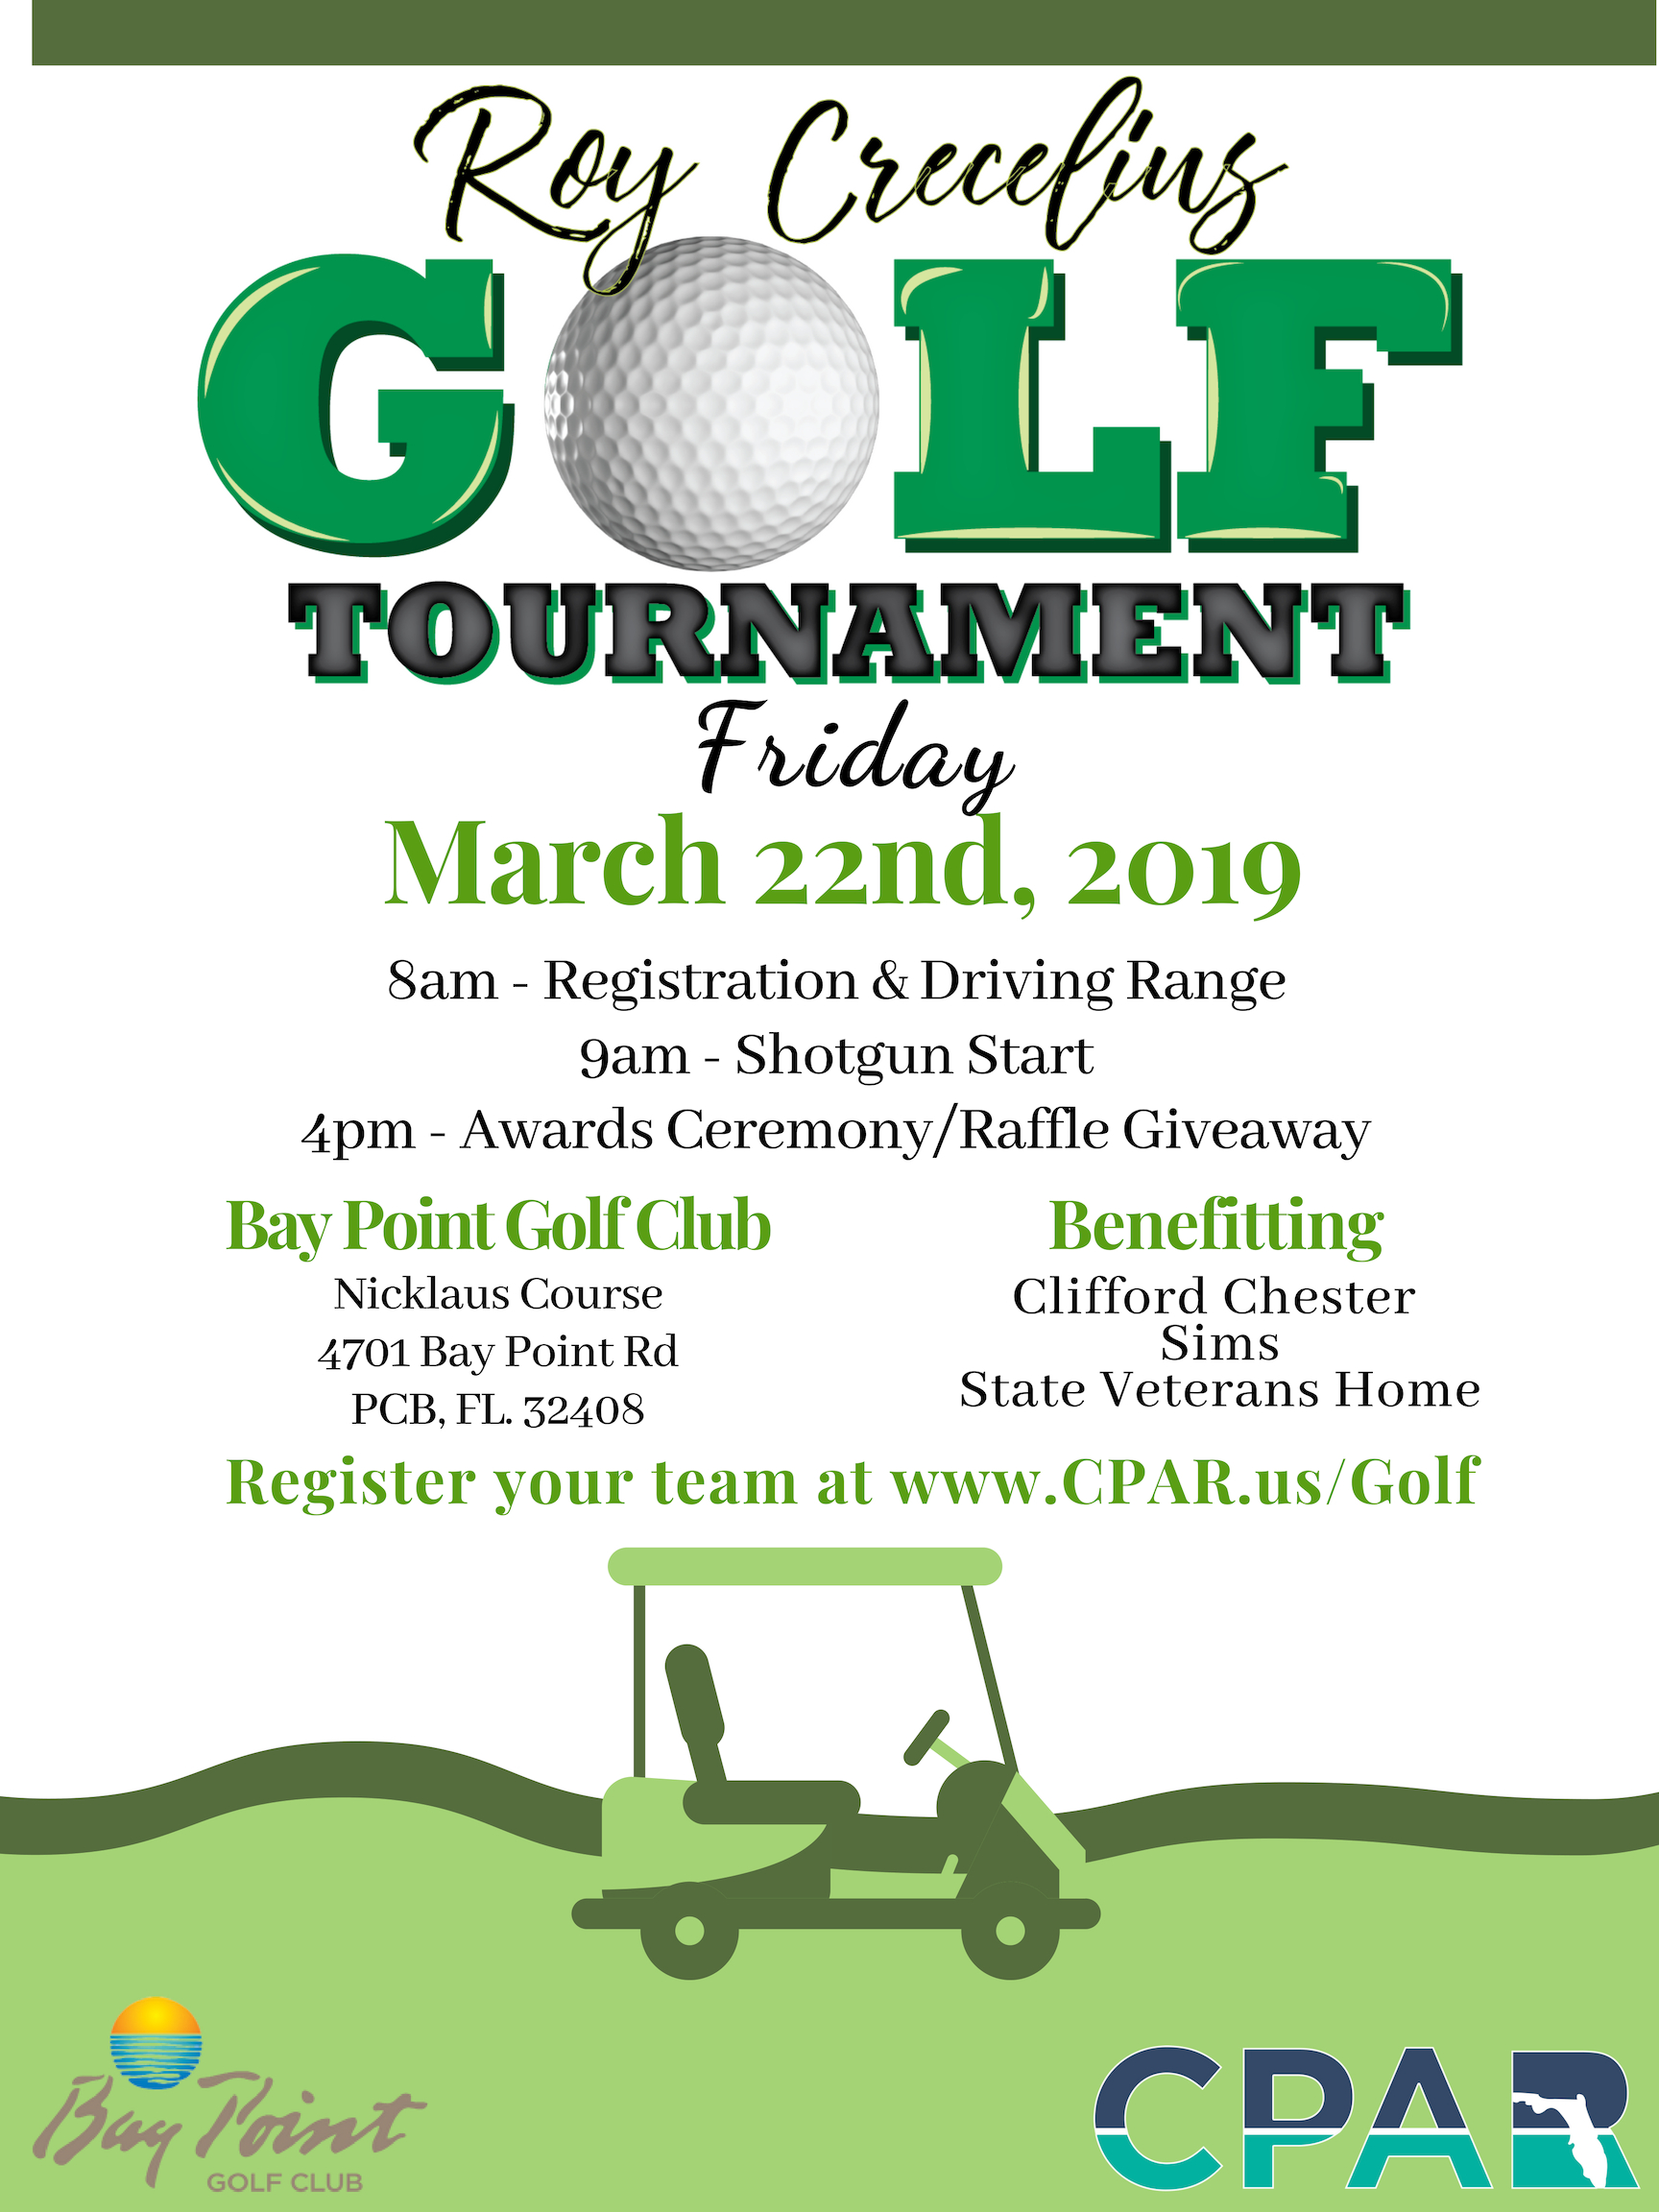 Roy Crecelius Charity Golf Tournament | Central Panhandle